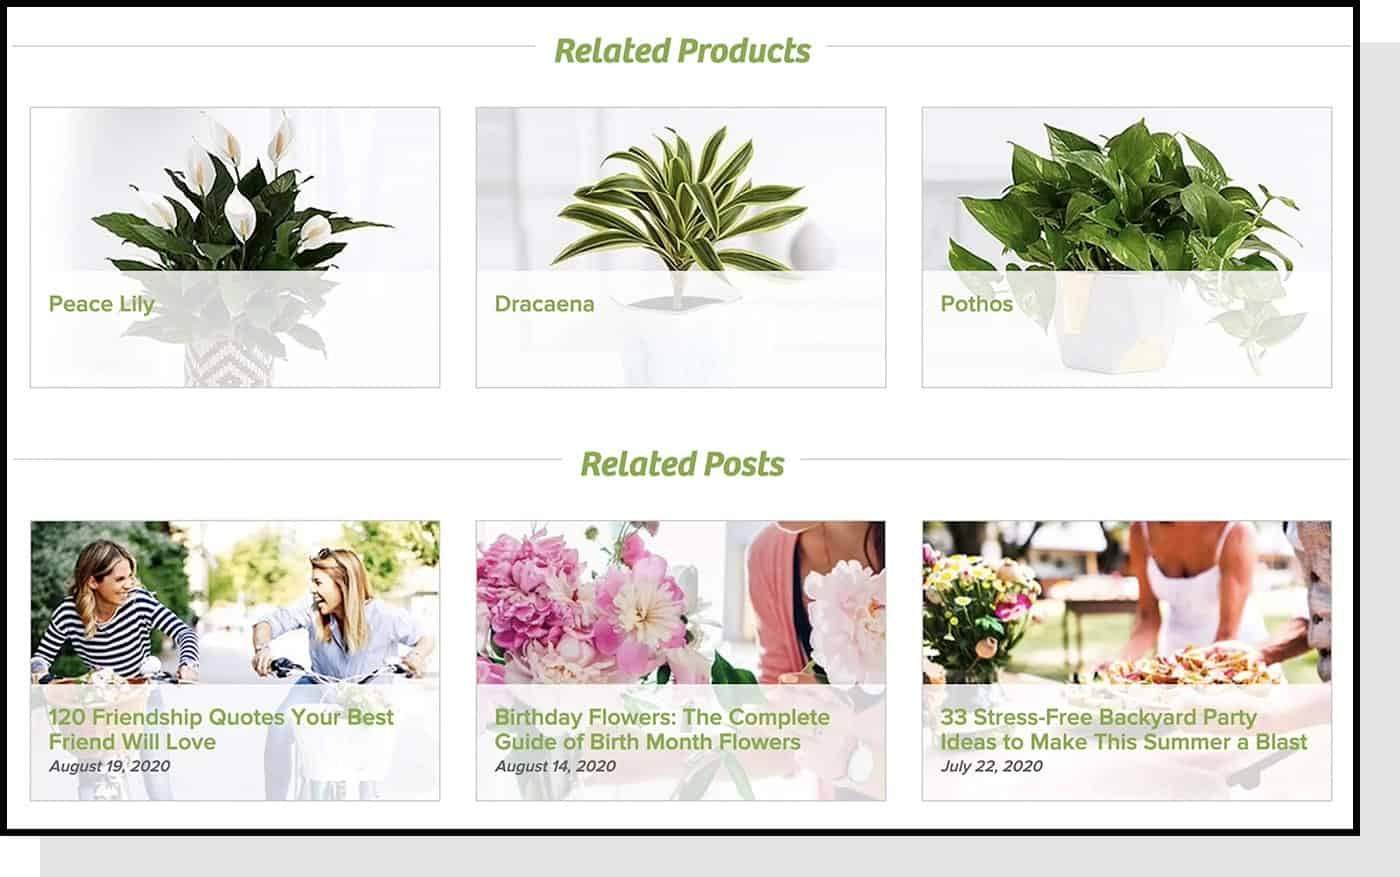 proflowers related products